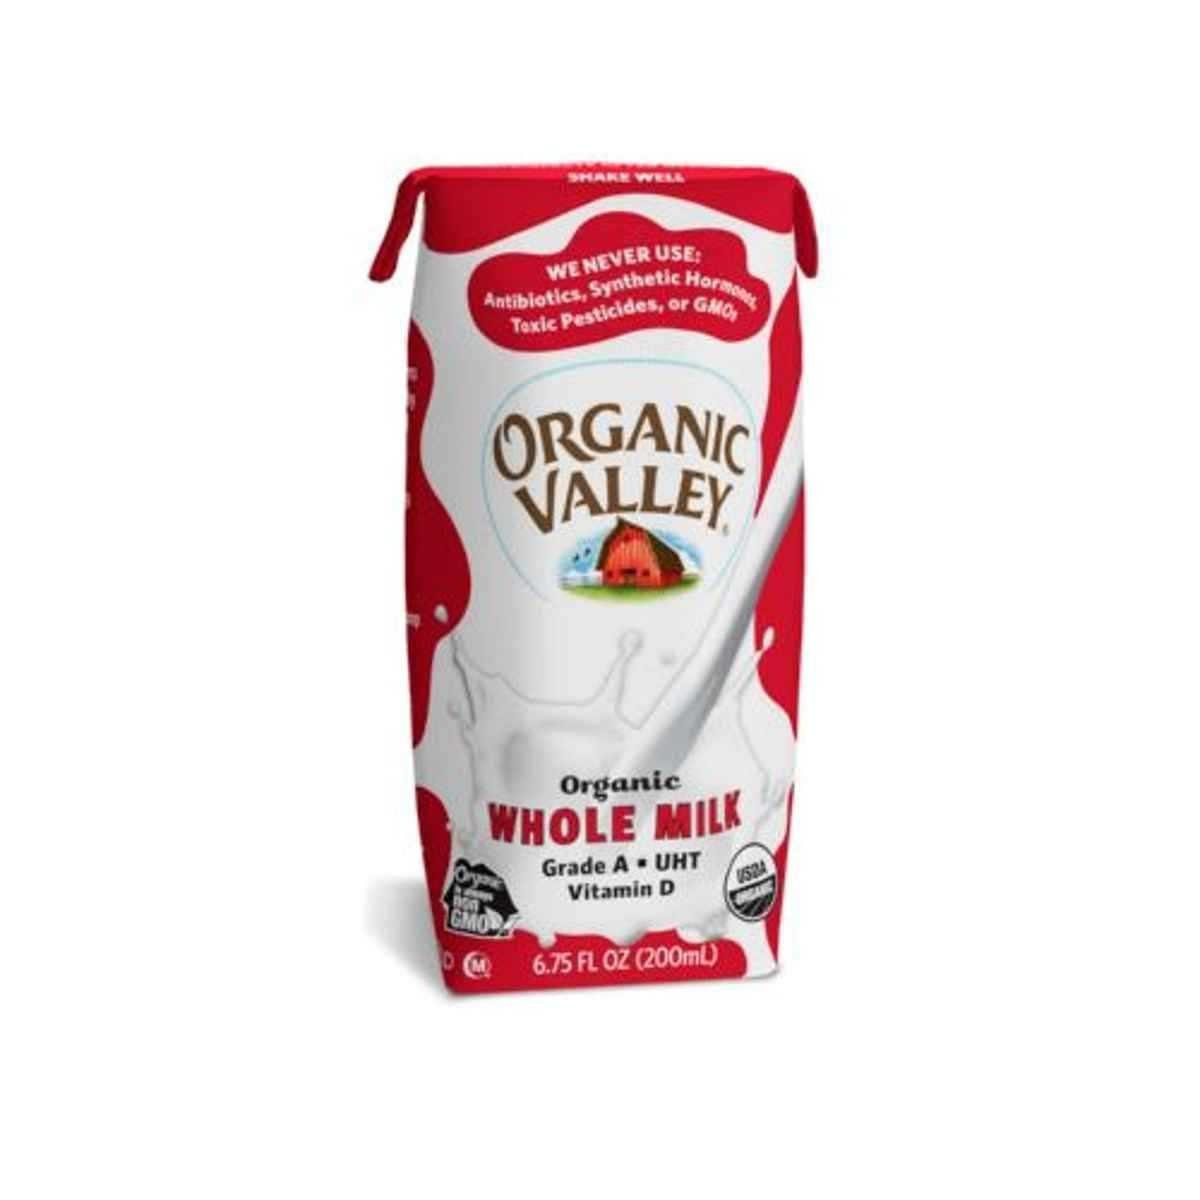 Whole Milk, (12 Pack In 1 Box) by Organic Valley